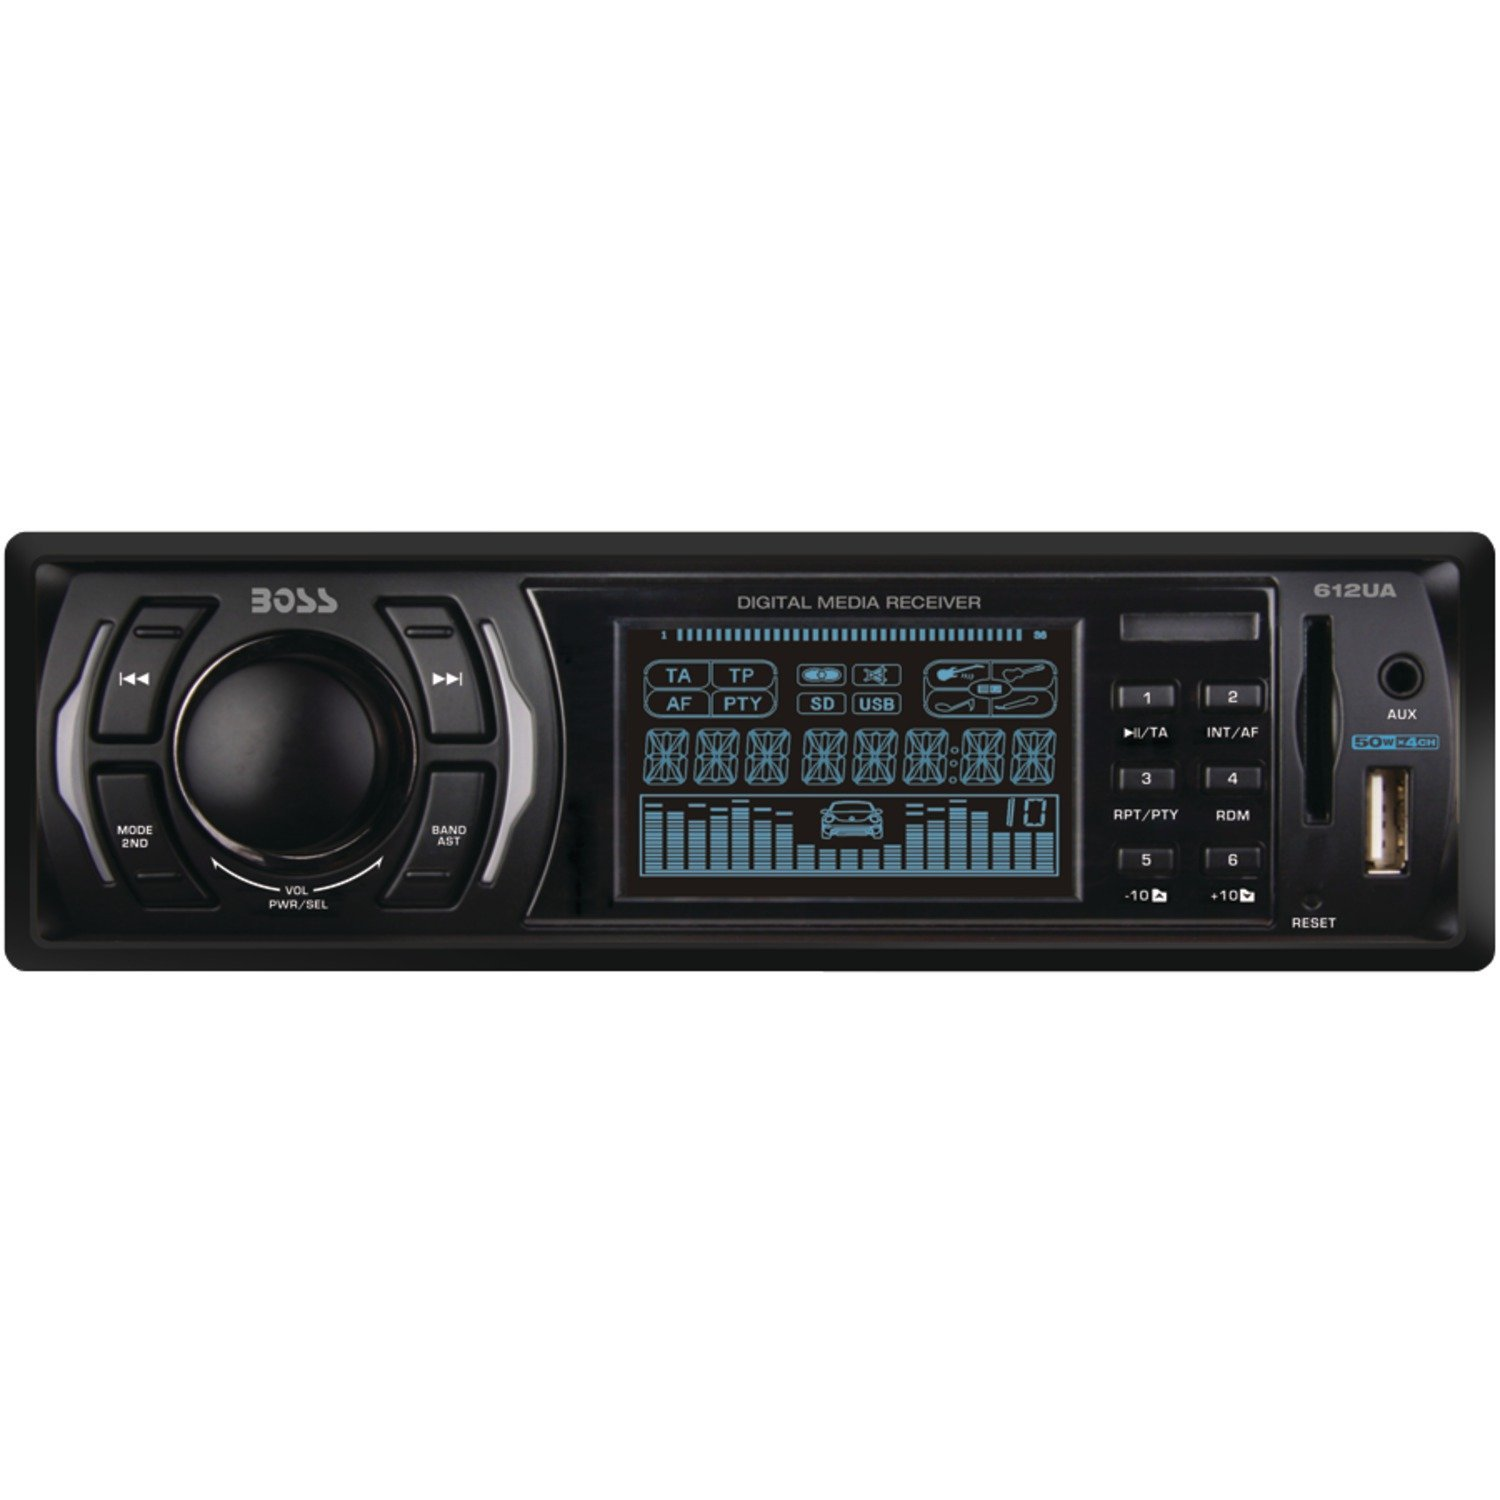 boss 612ua mp3 flash drive aux am fm radio car stereo for sale in jamaica. Black Bedroom Furniture Sets. Home Design Ideas